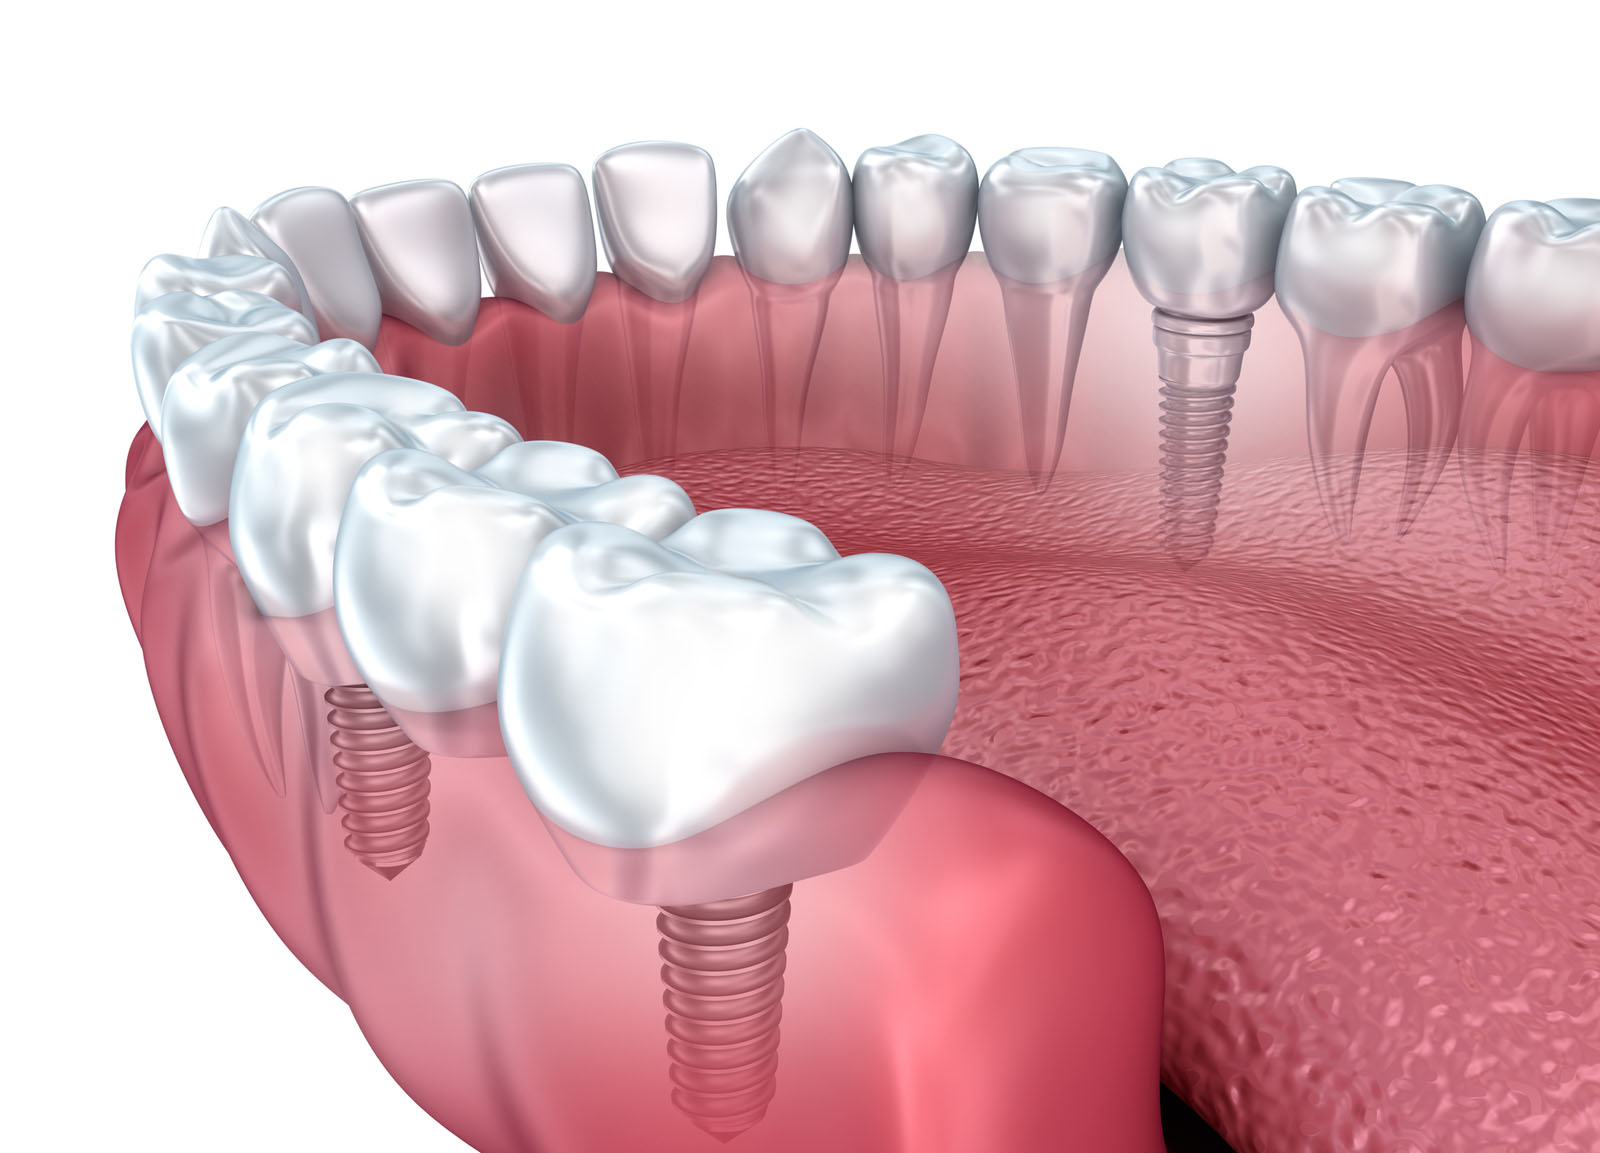 Lower teeth and dental implant transparent render isolated on white .